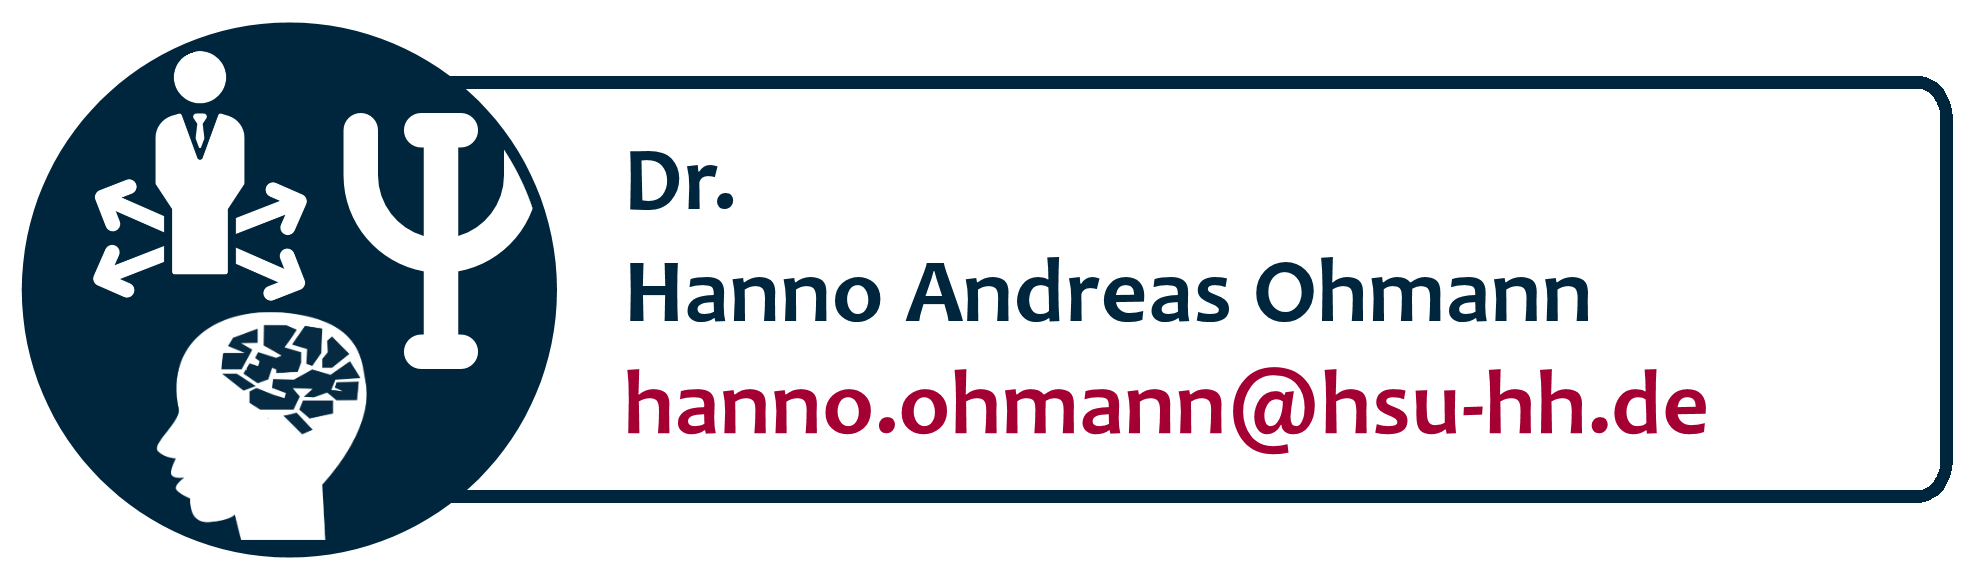 Dr. Hanno Andreas Ohmann